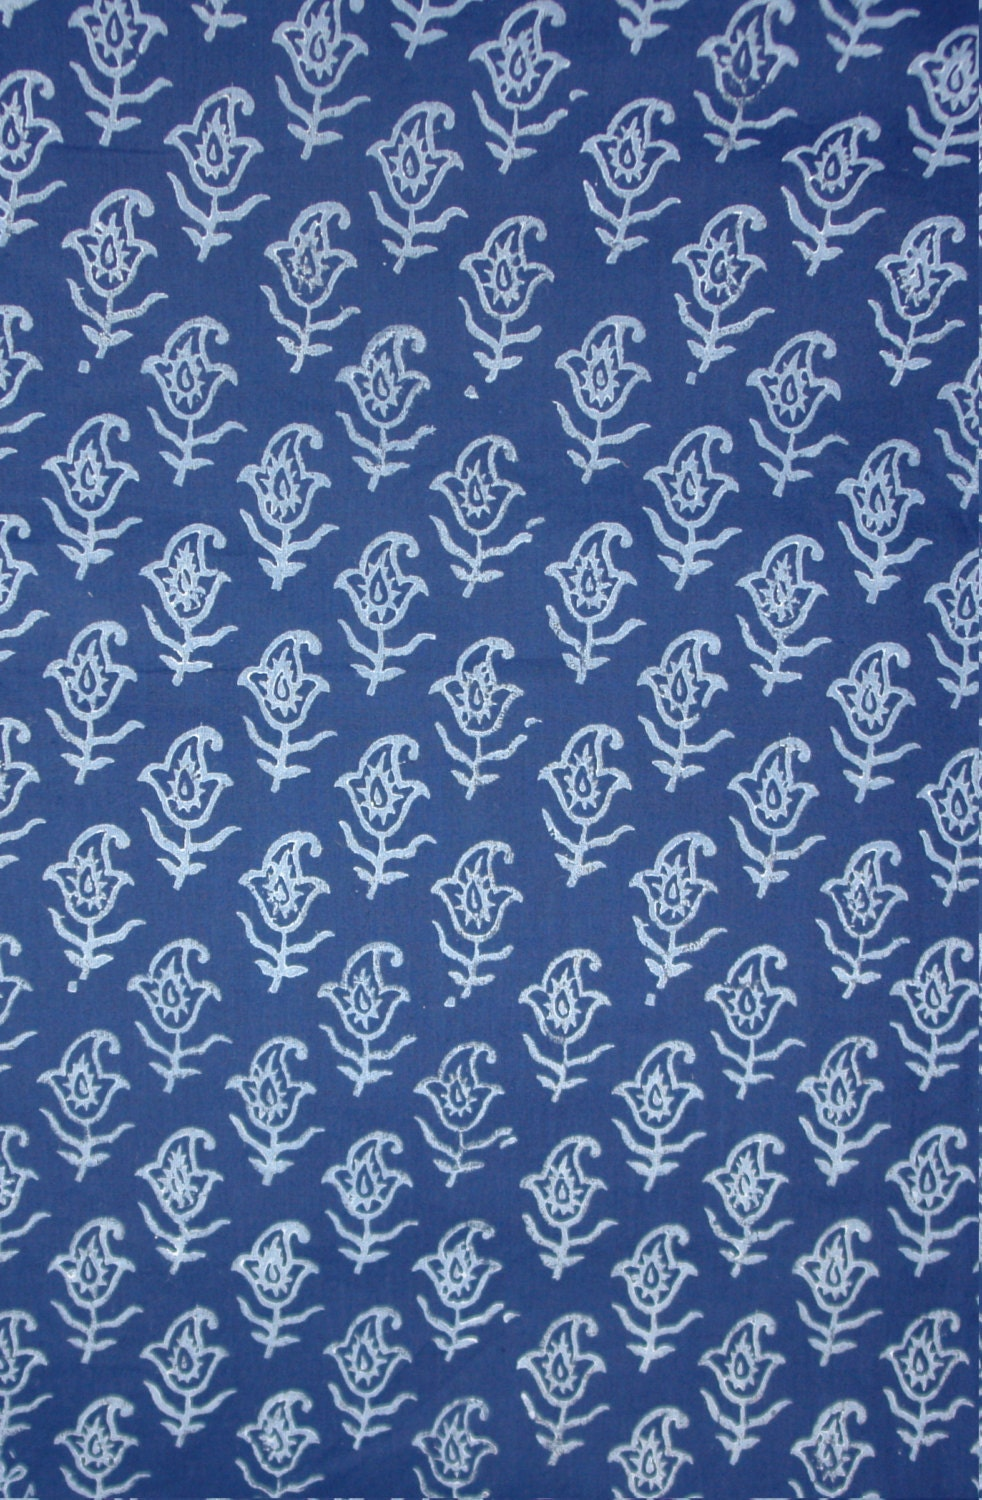 Indigo fabric indigo hand printed fabric printed cotton for Printed cotton fabric